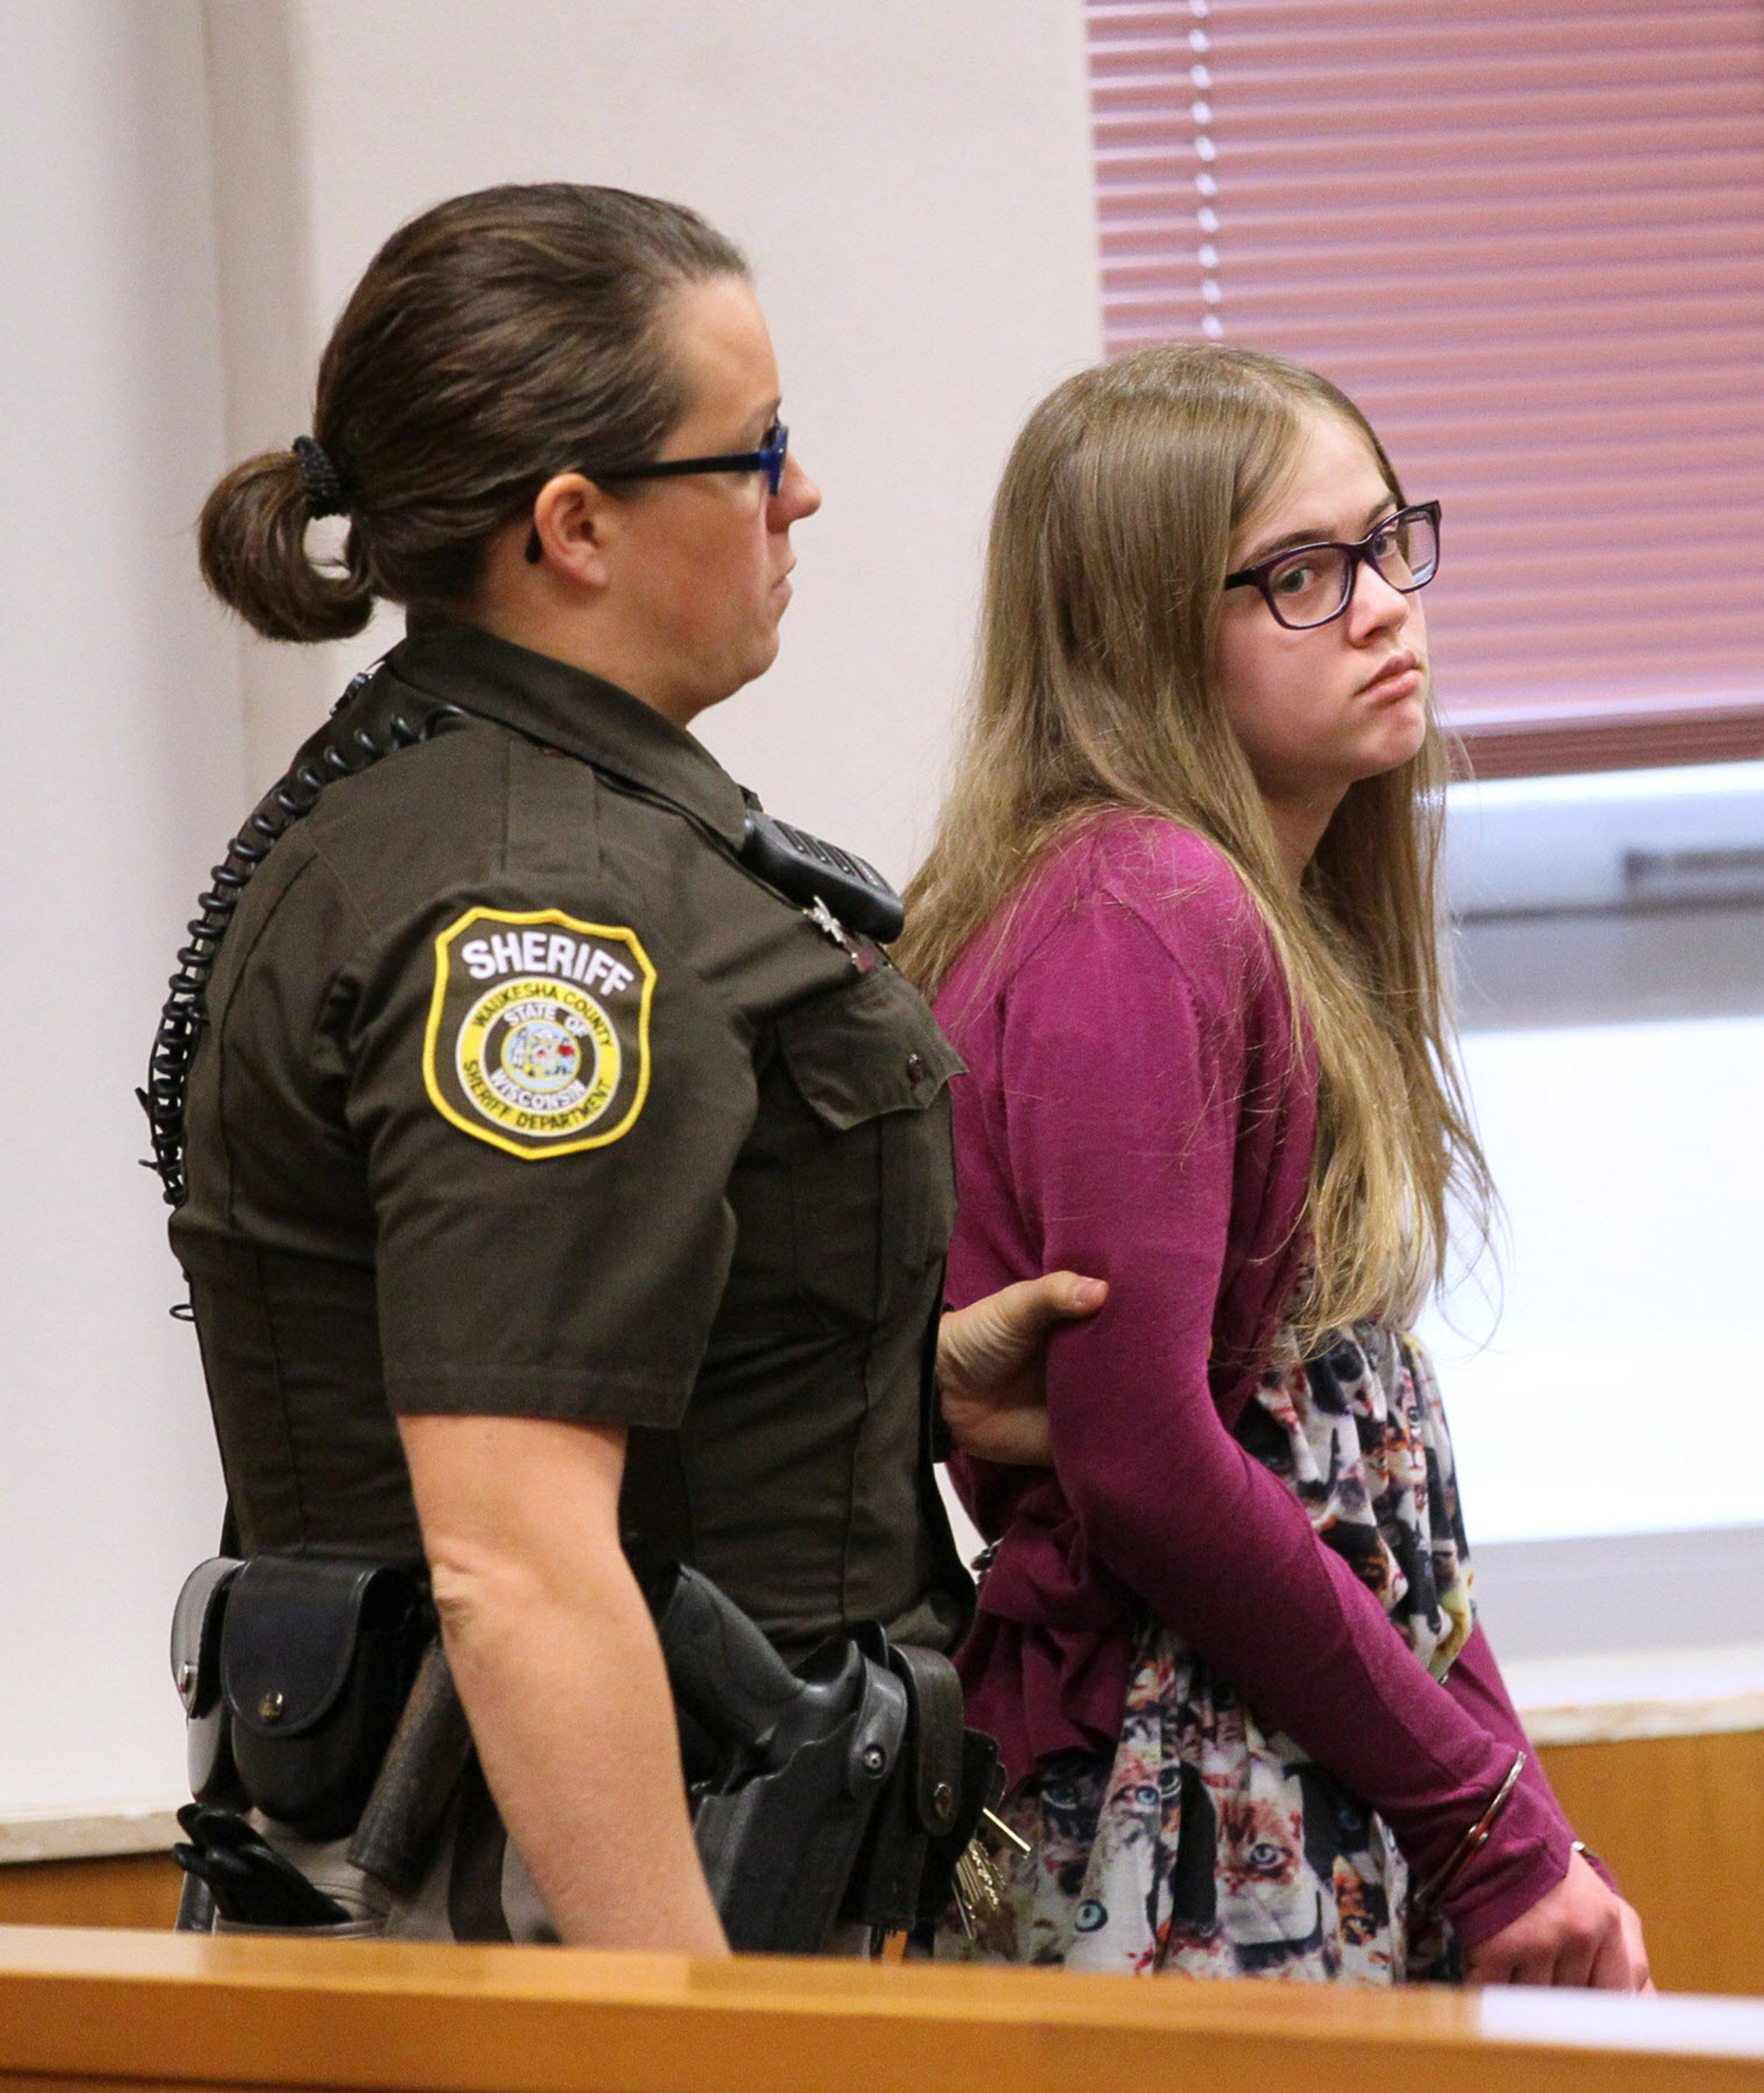 A sheriff's deputy brings Morgan Geyser into court on Aug. 21, 2015.